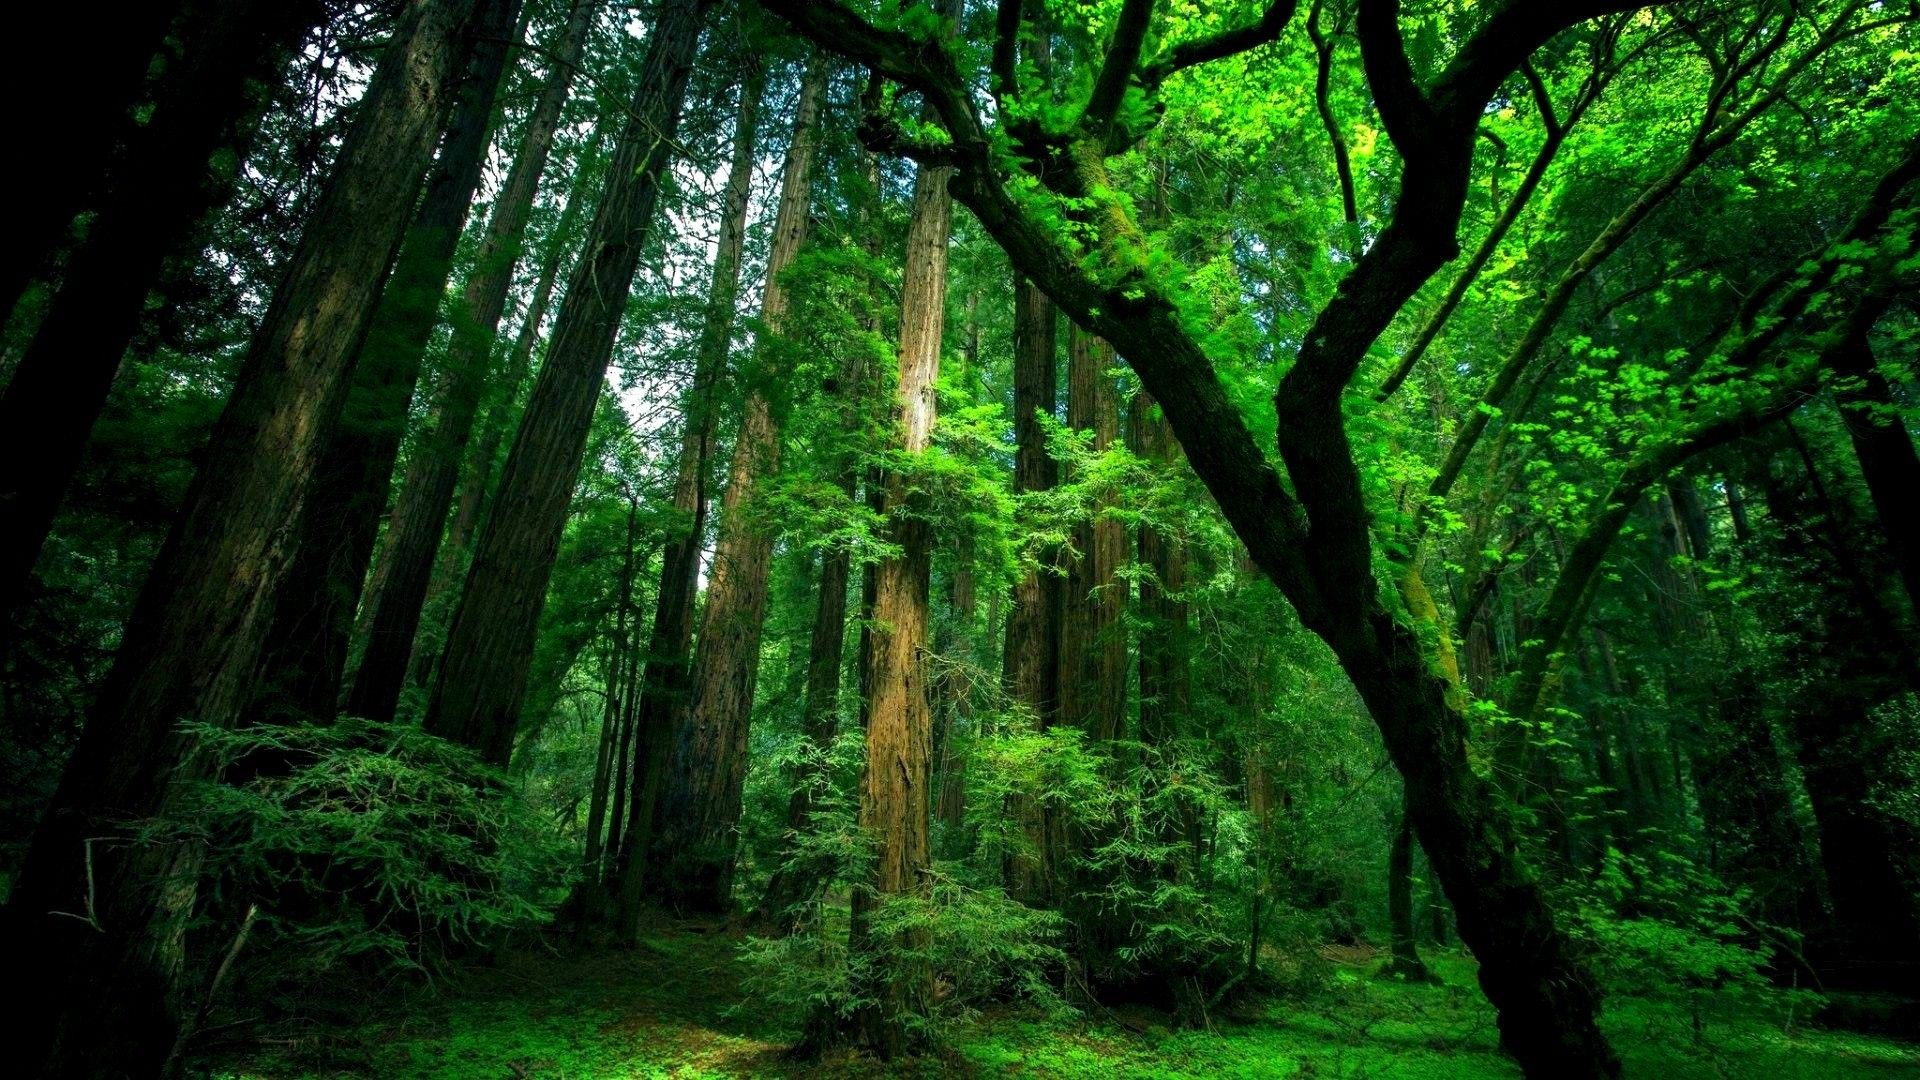 Trees Forest download free wallpapers for pc in hd